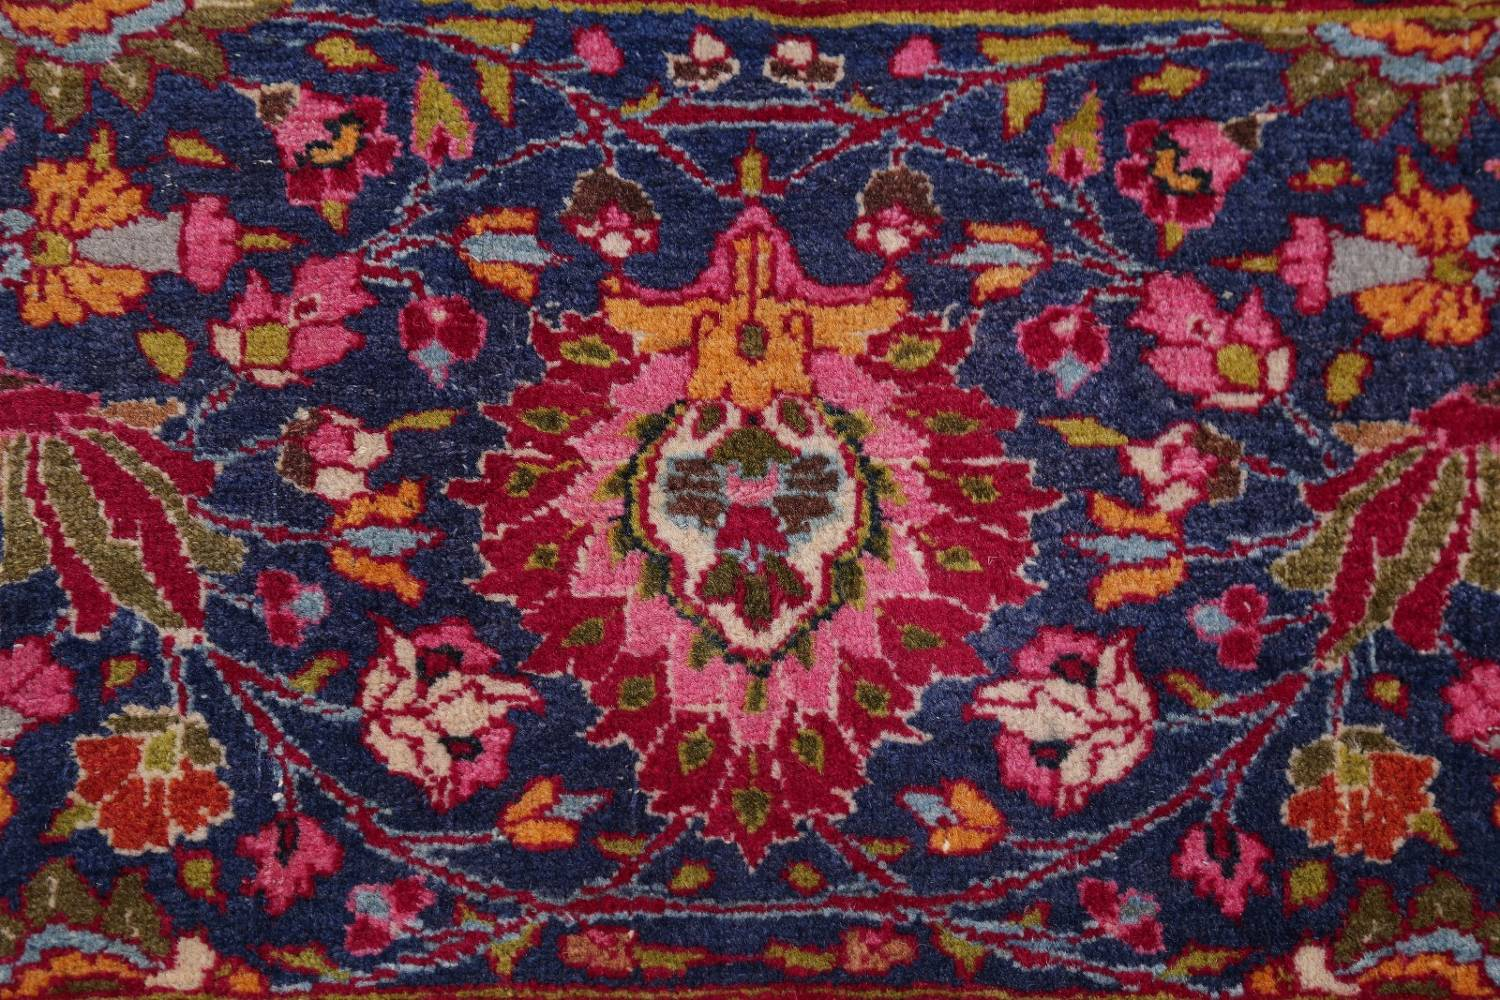 All-Over Floral 11x16 Mashad Persian Area Rug image 8